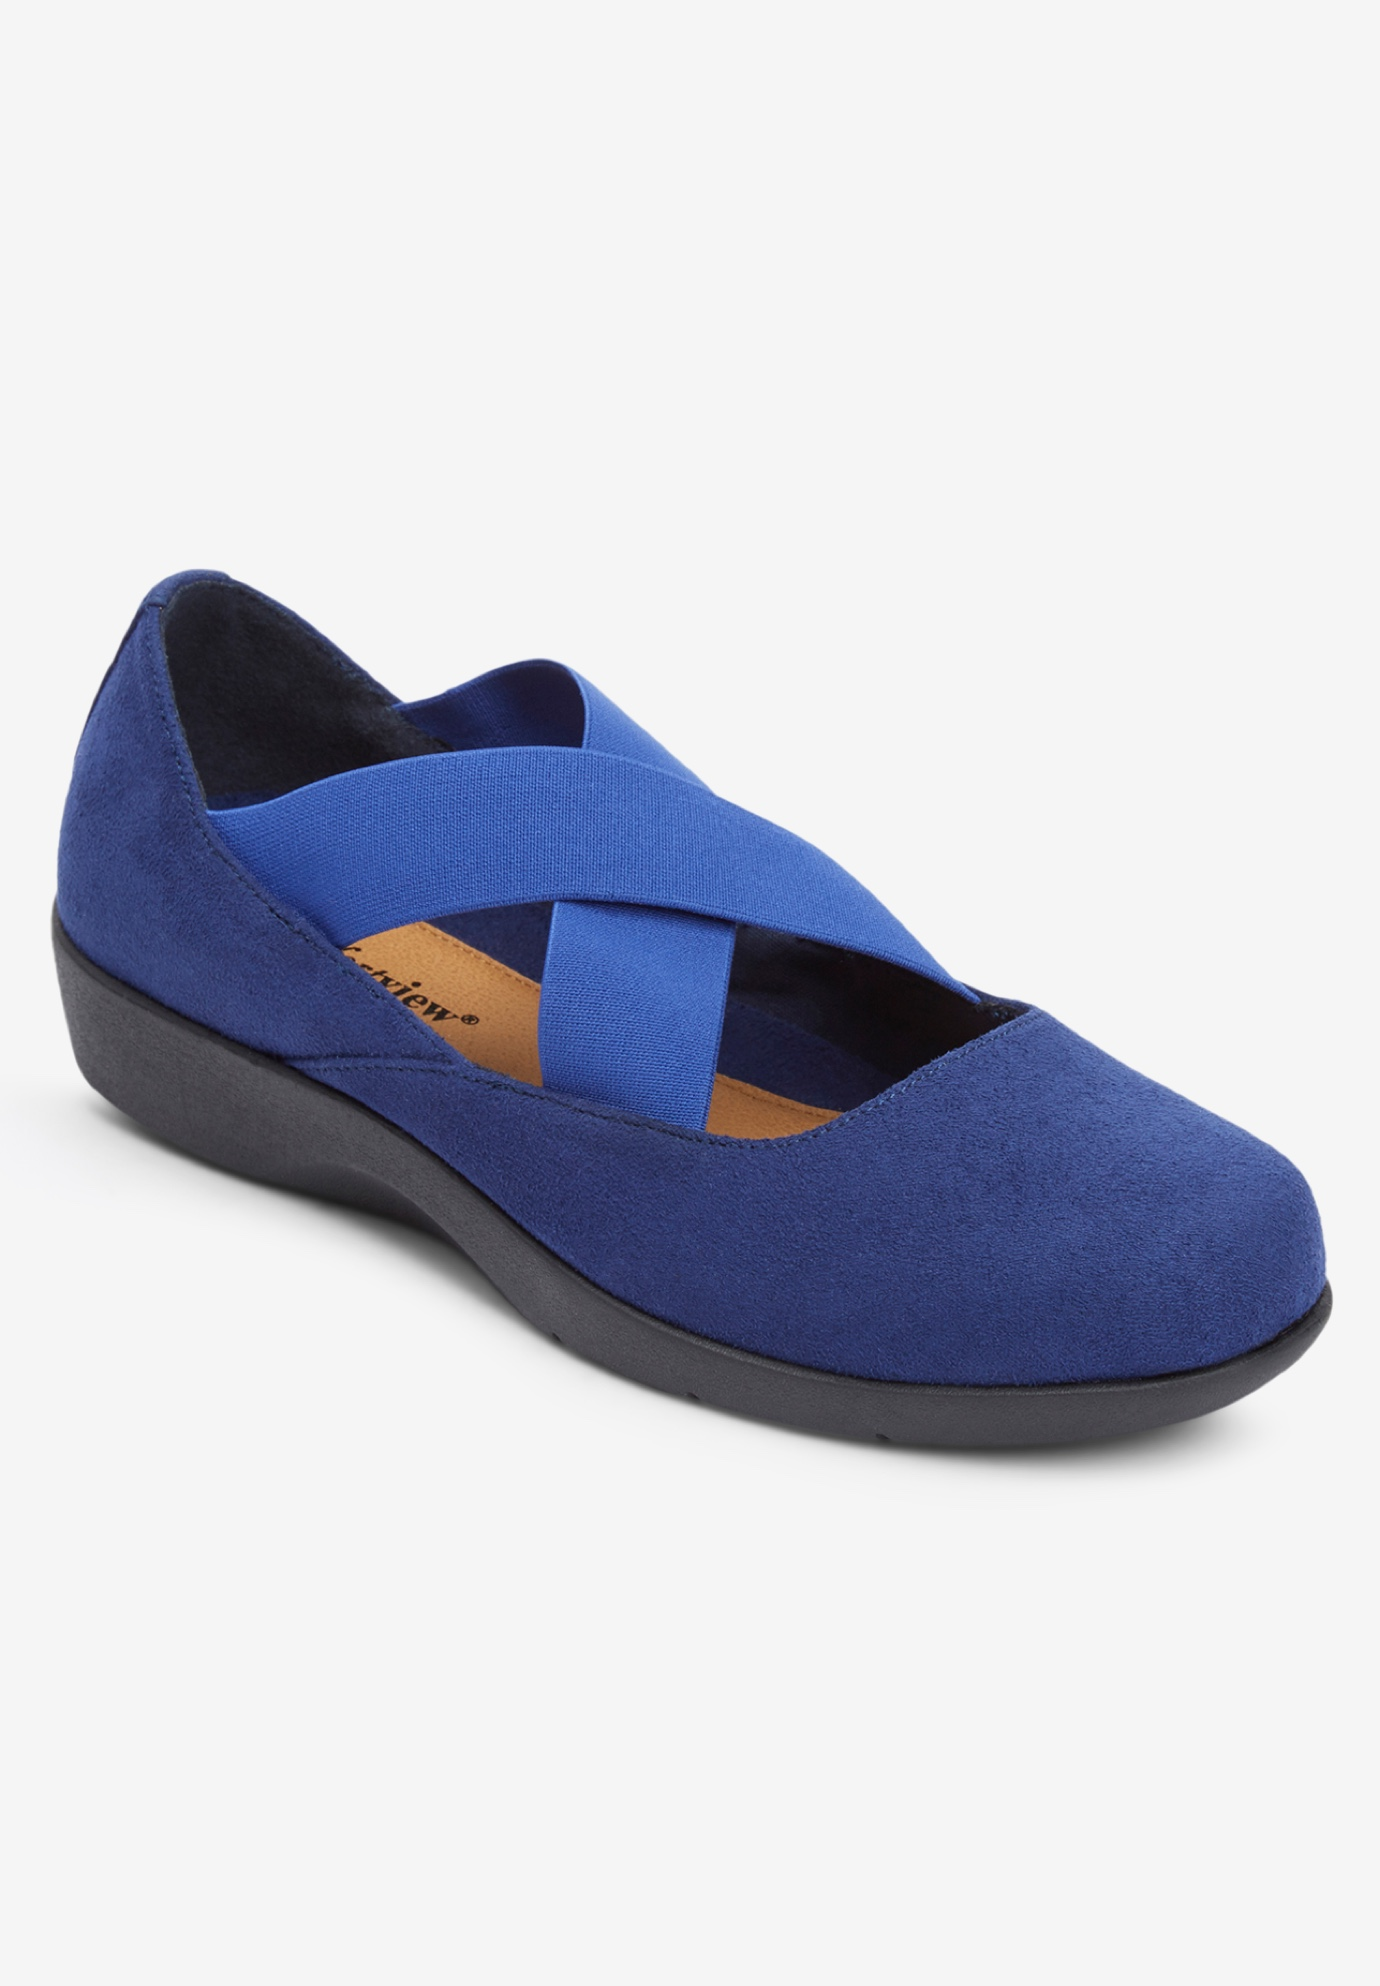 The Stacia Mary Jane Flat ,